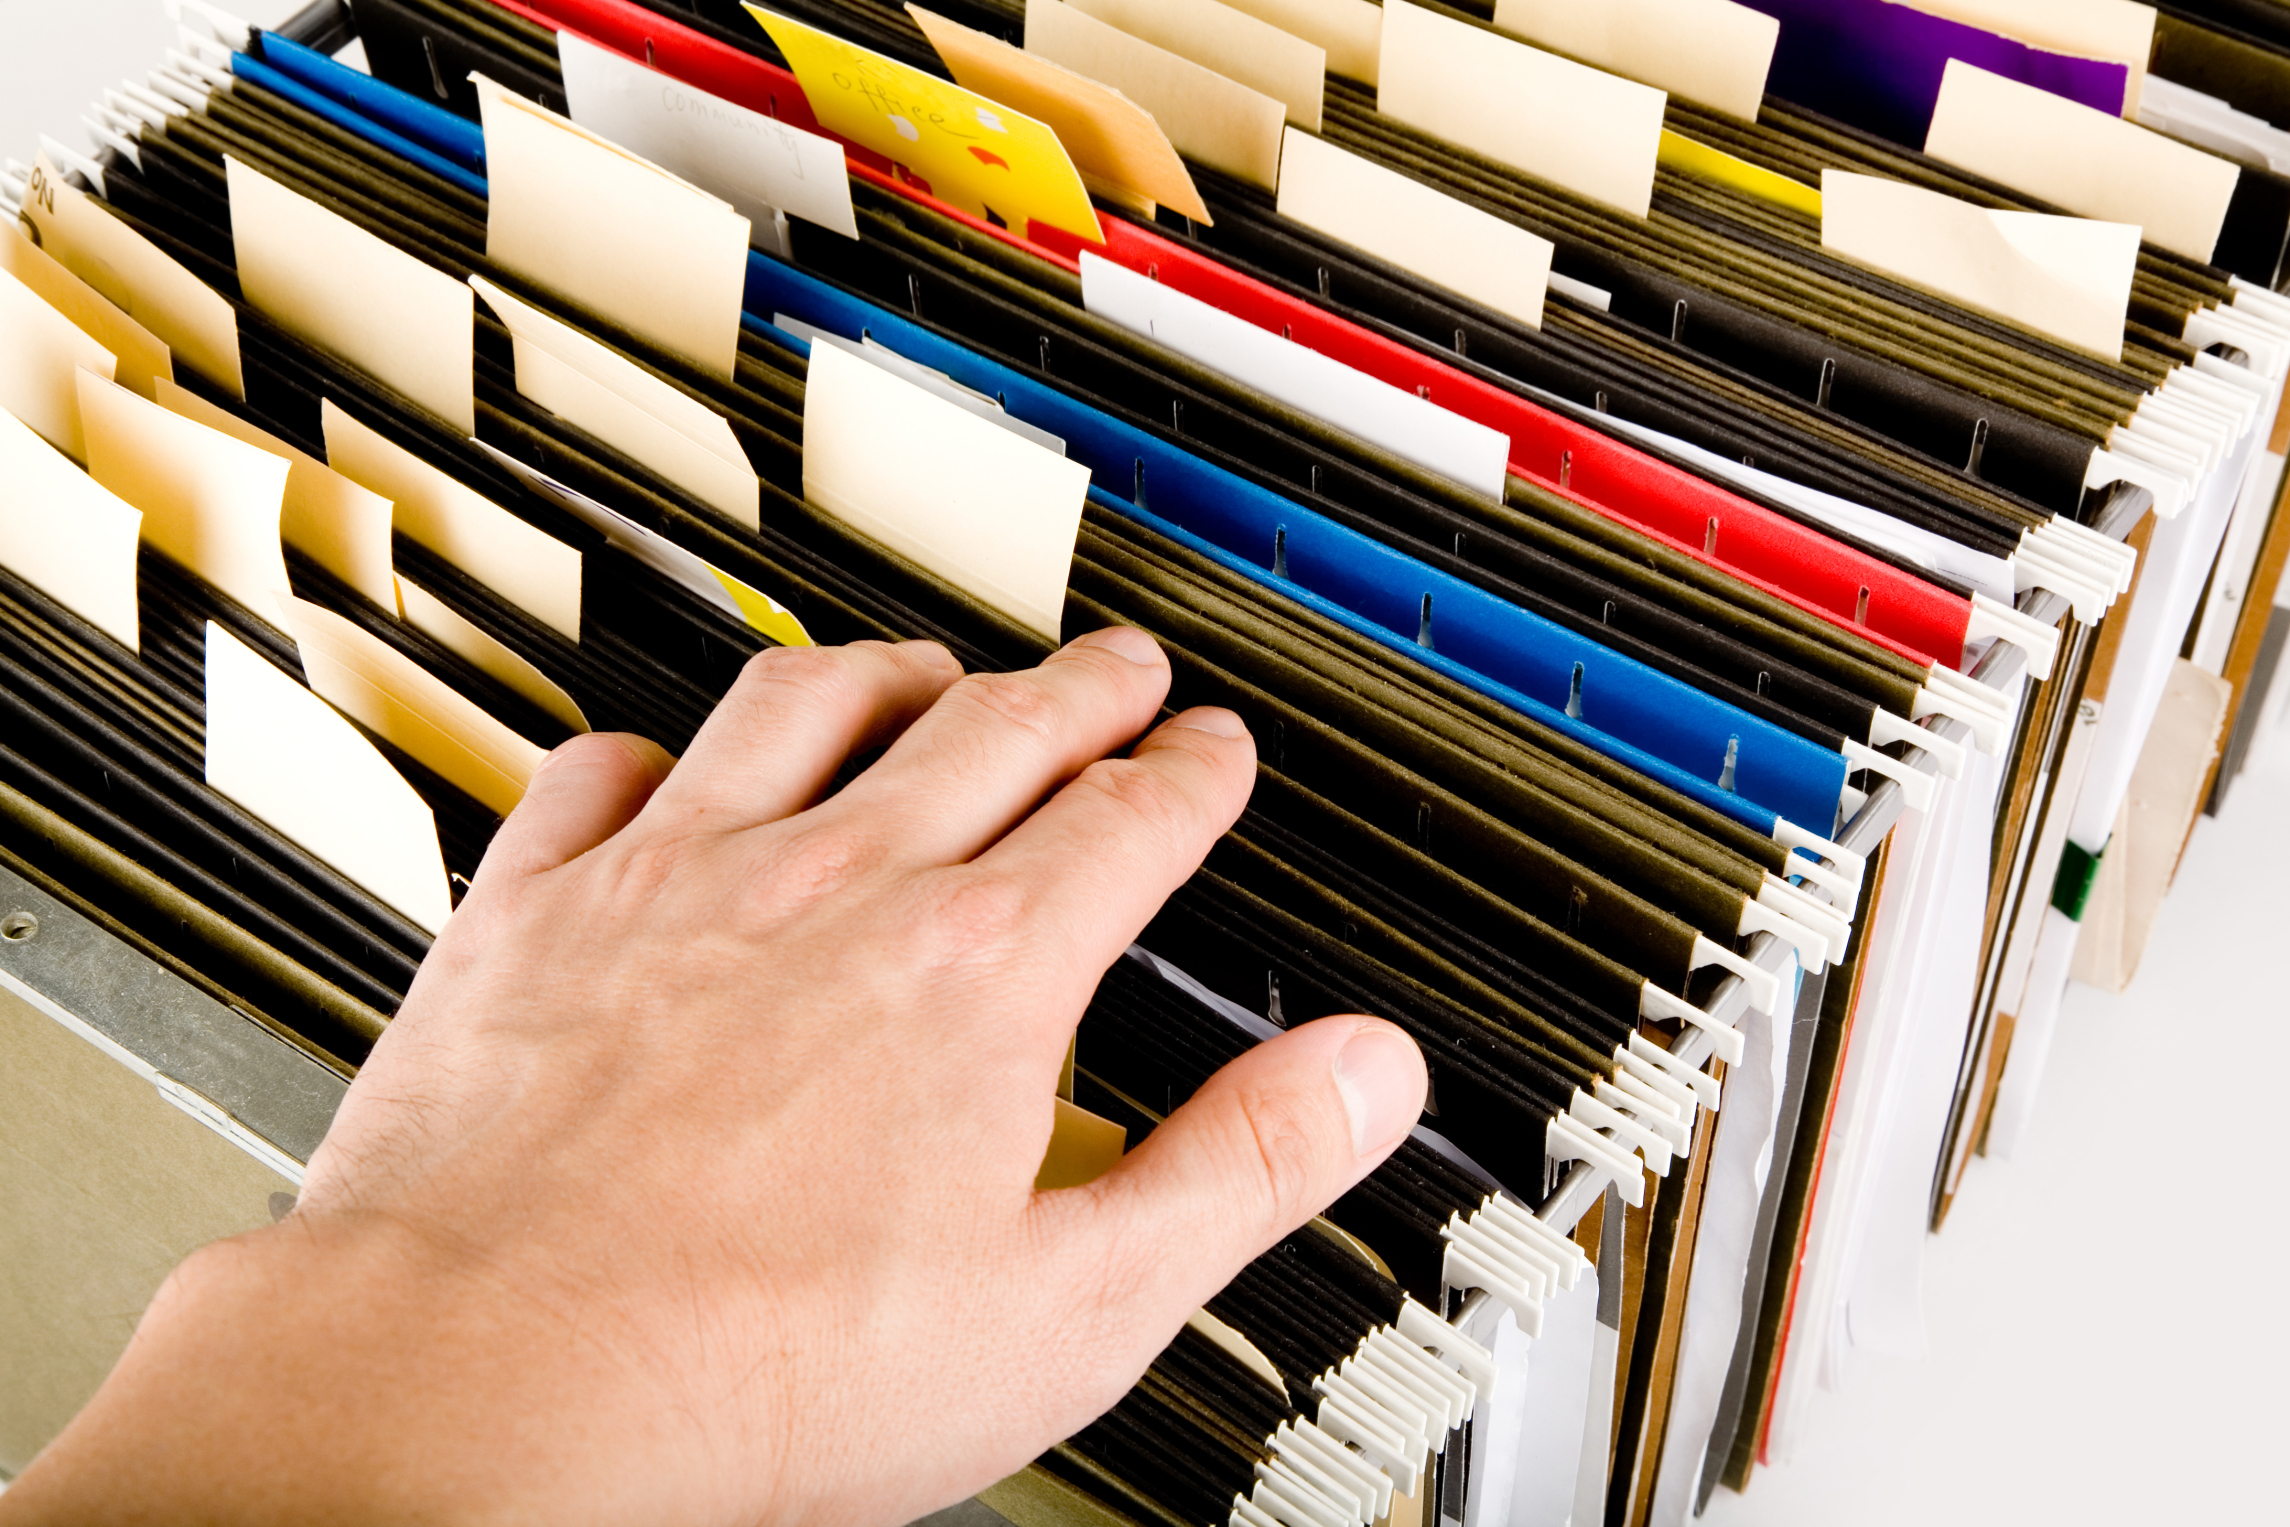 Hand Touching Row of Folders